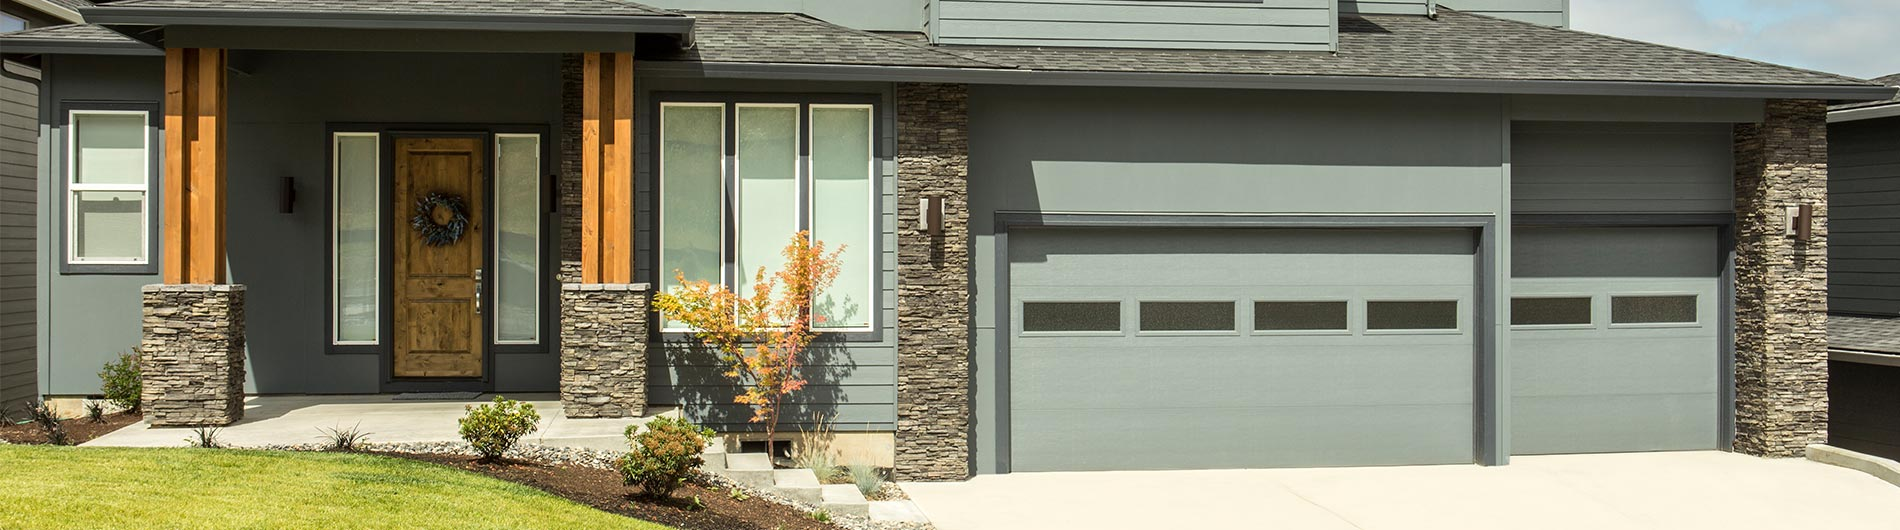 model-9605-Steel-Garage-Door-Contemporary-Custom-Paint-Clear-III